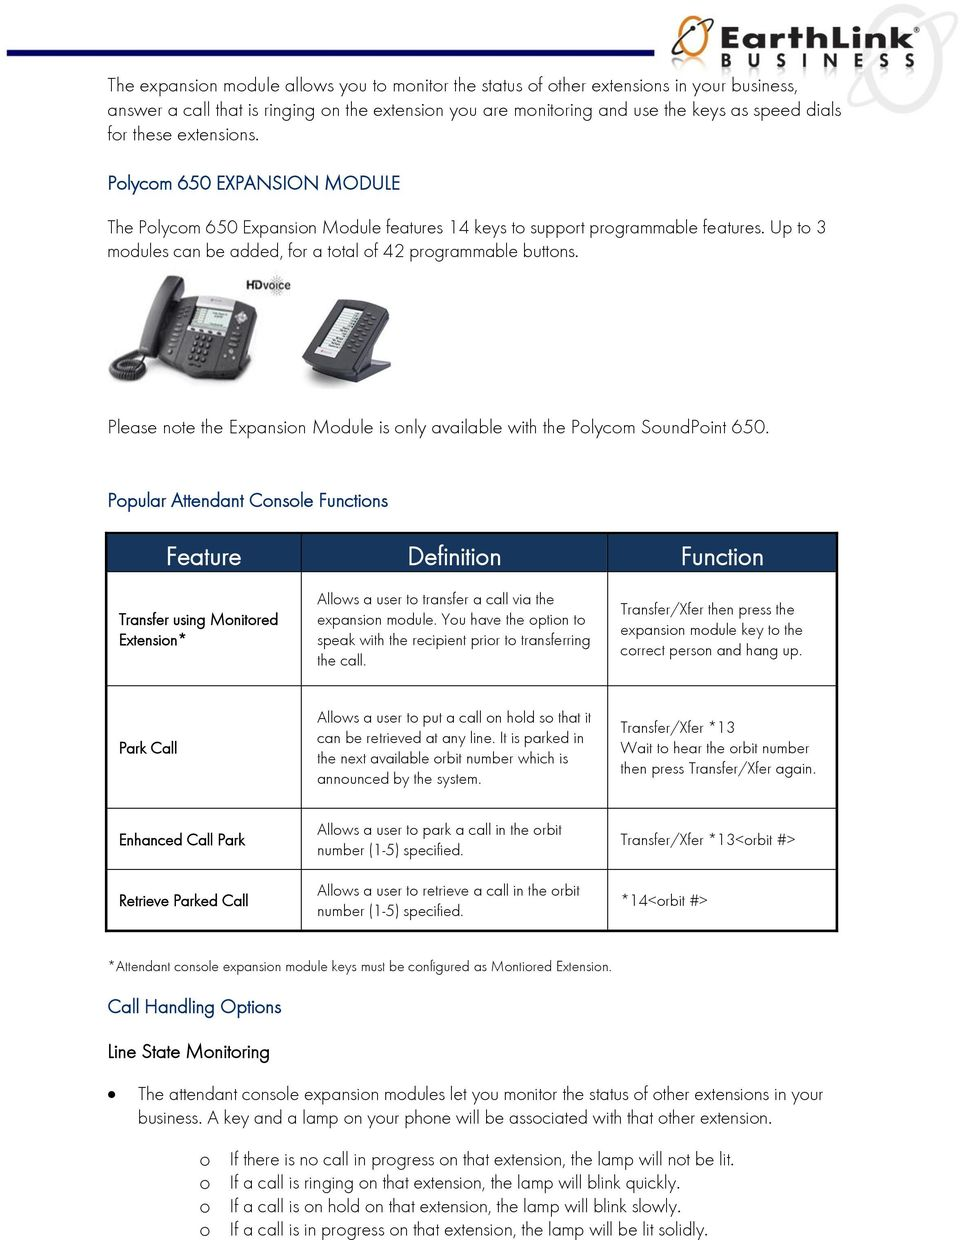 Please note the Expansion Module is only available with the Polycom SoundPoint 650.